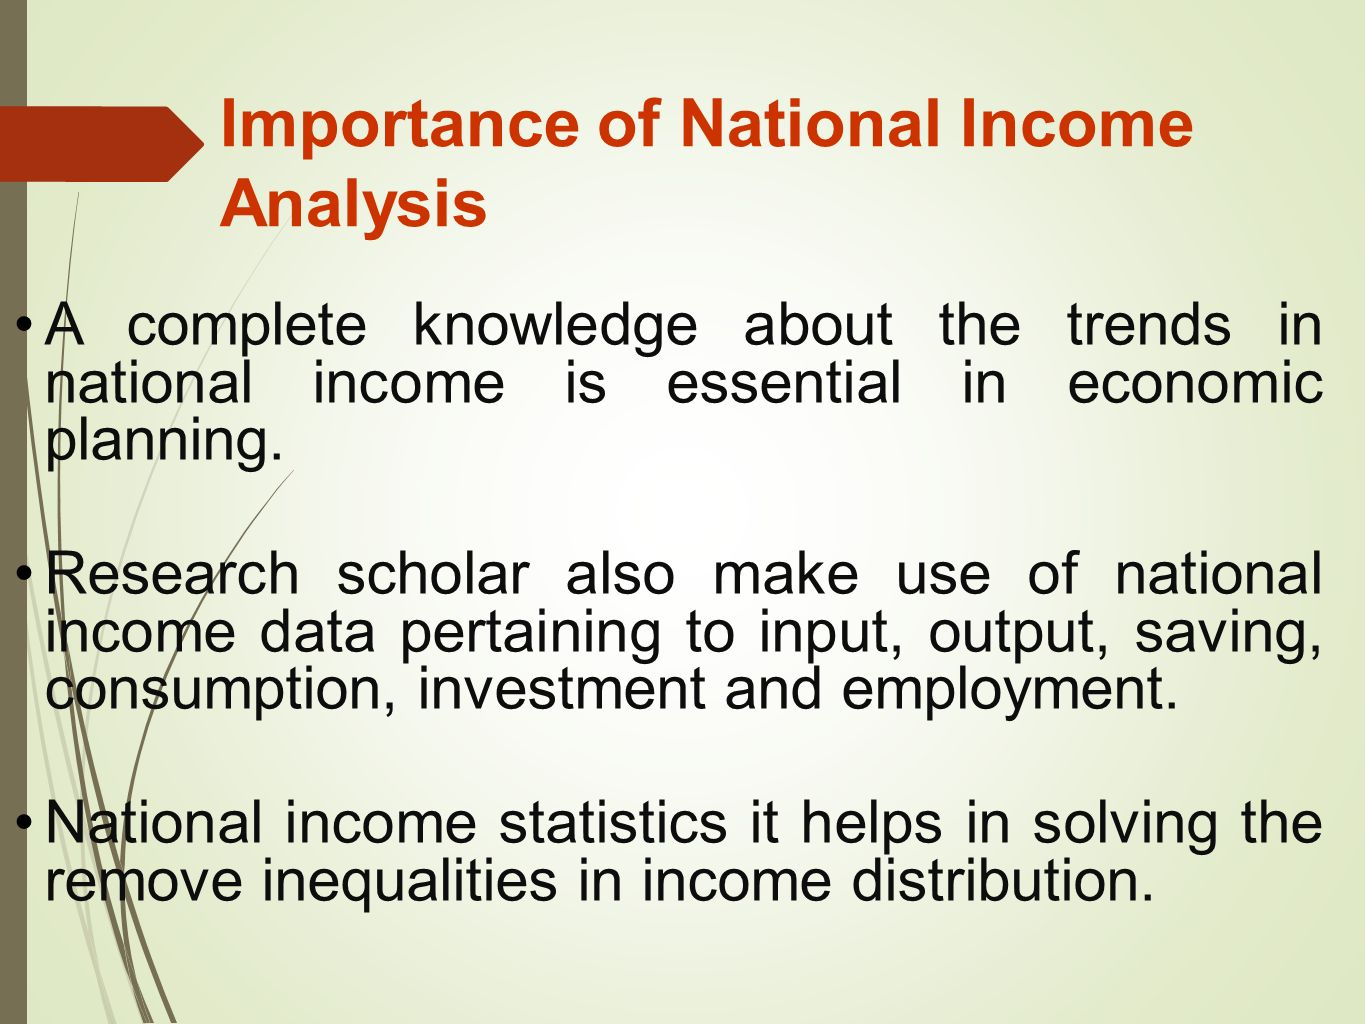 Reasons for Growing Importance of National Income Studies